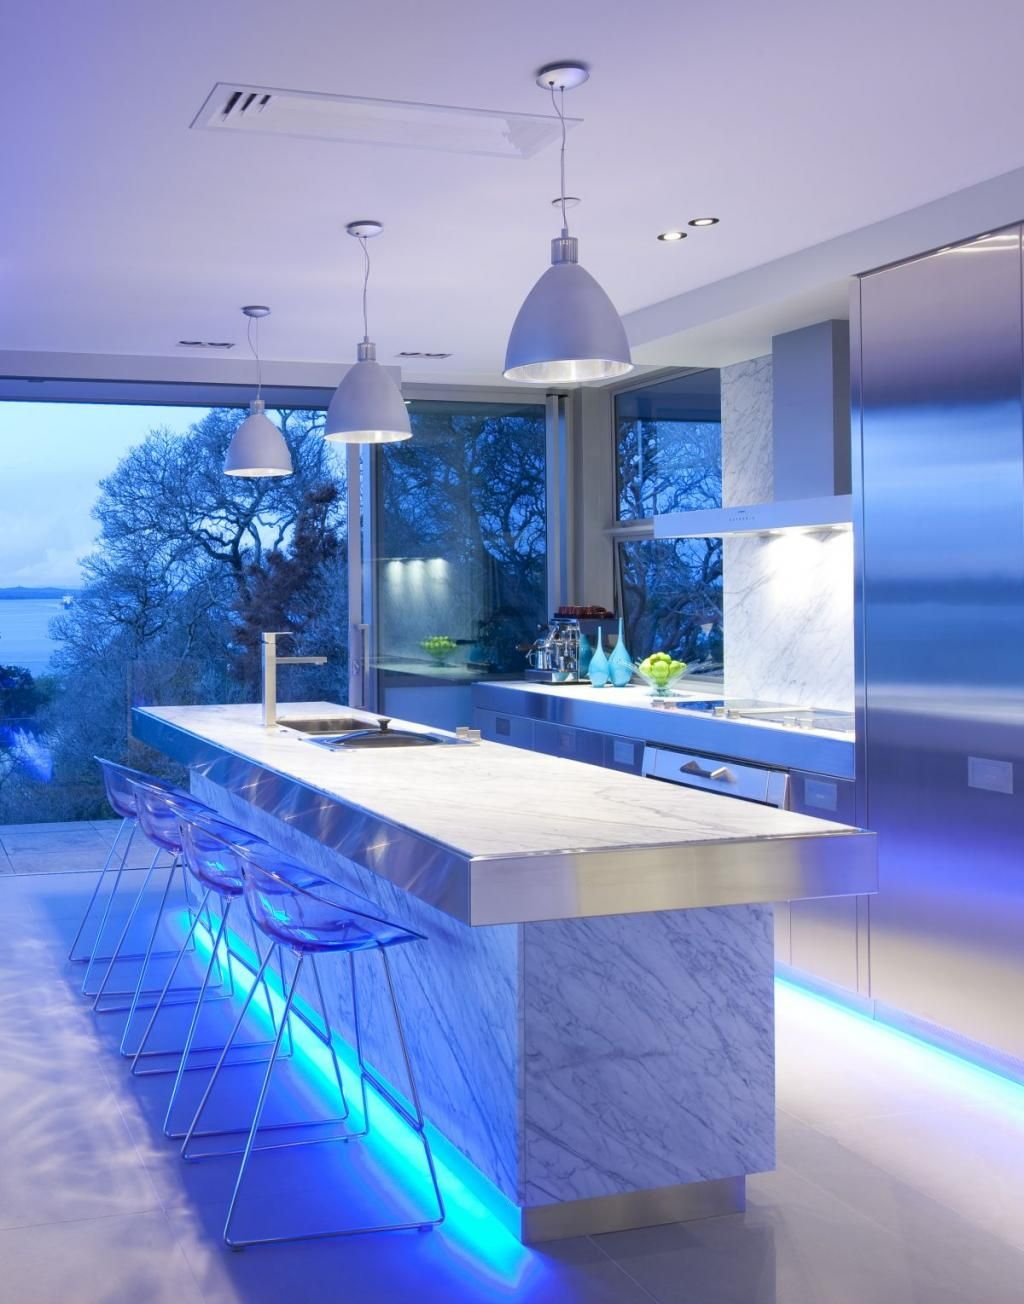 Retro New Age Luxury Kitchens Listed In Modern Kitchen Decor Bathroom Discussion And Design